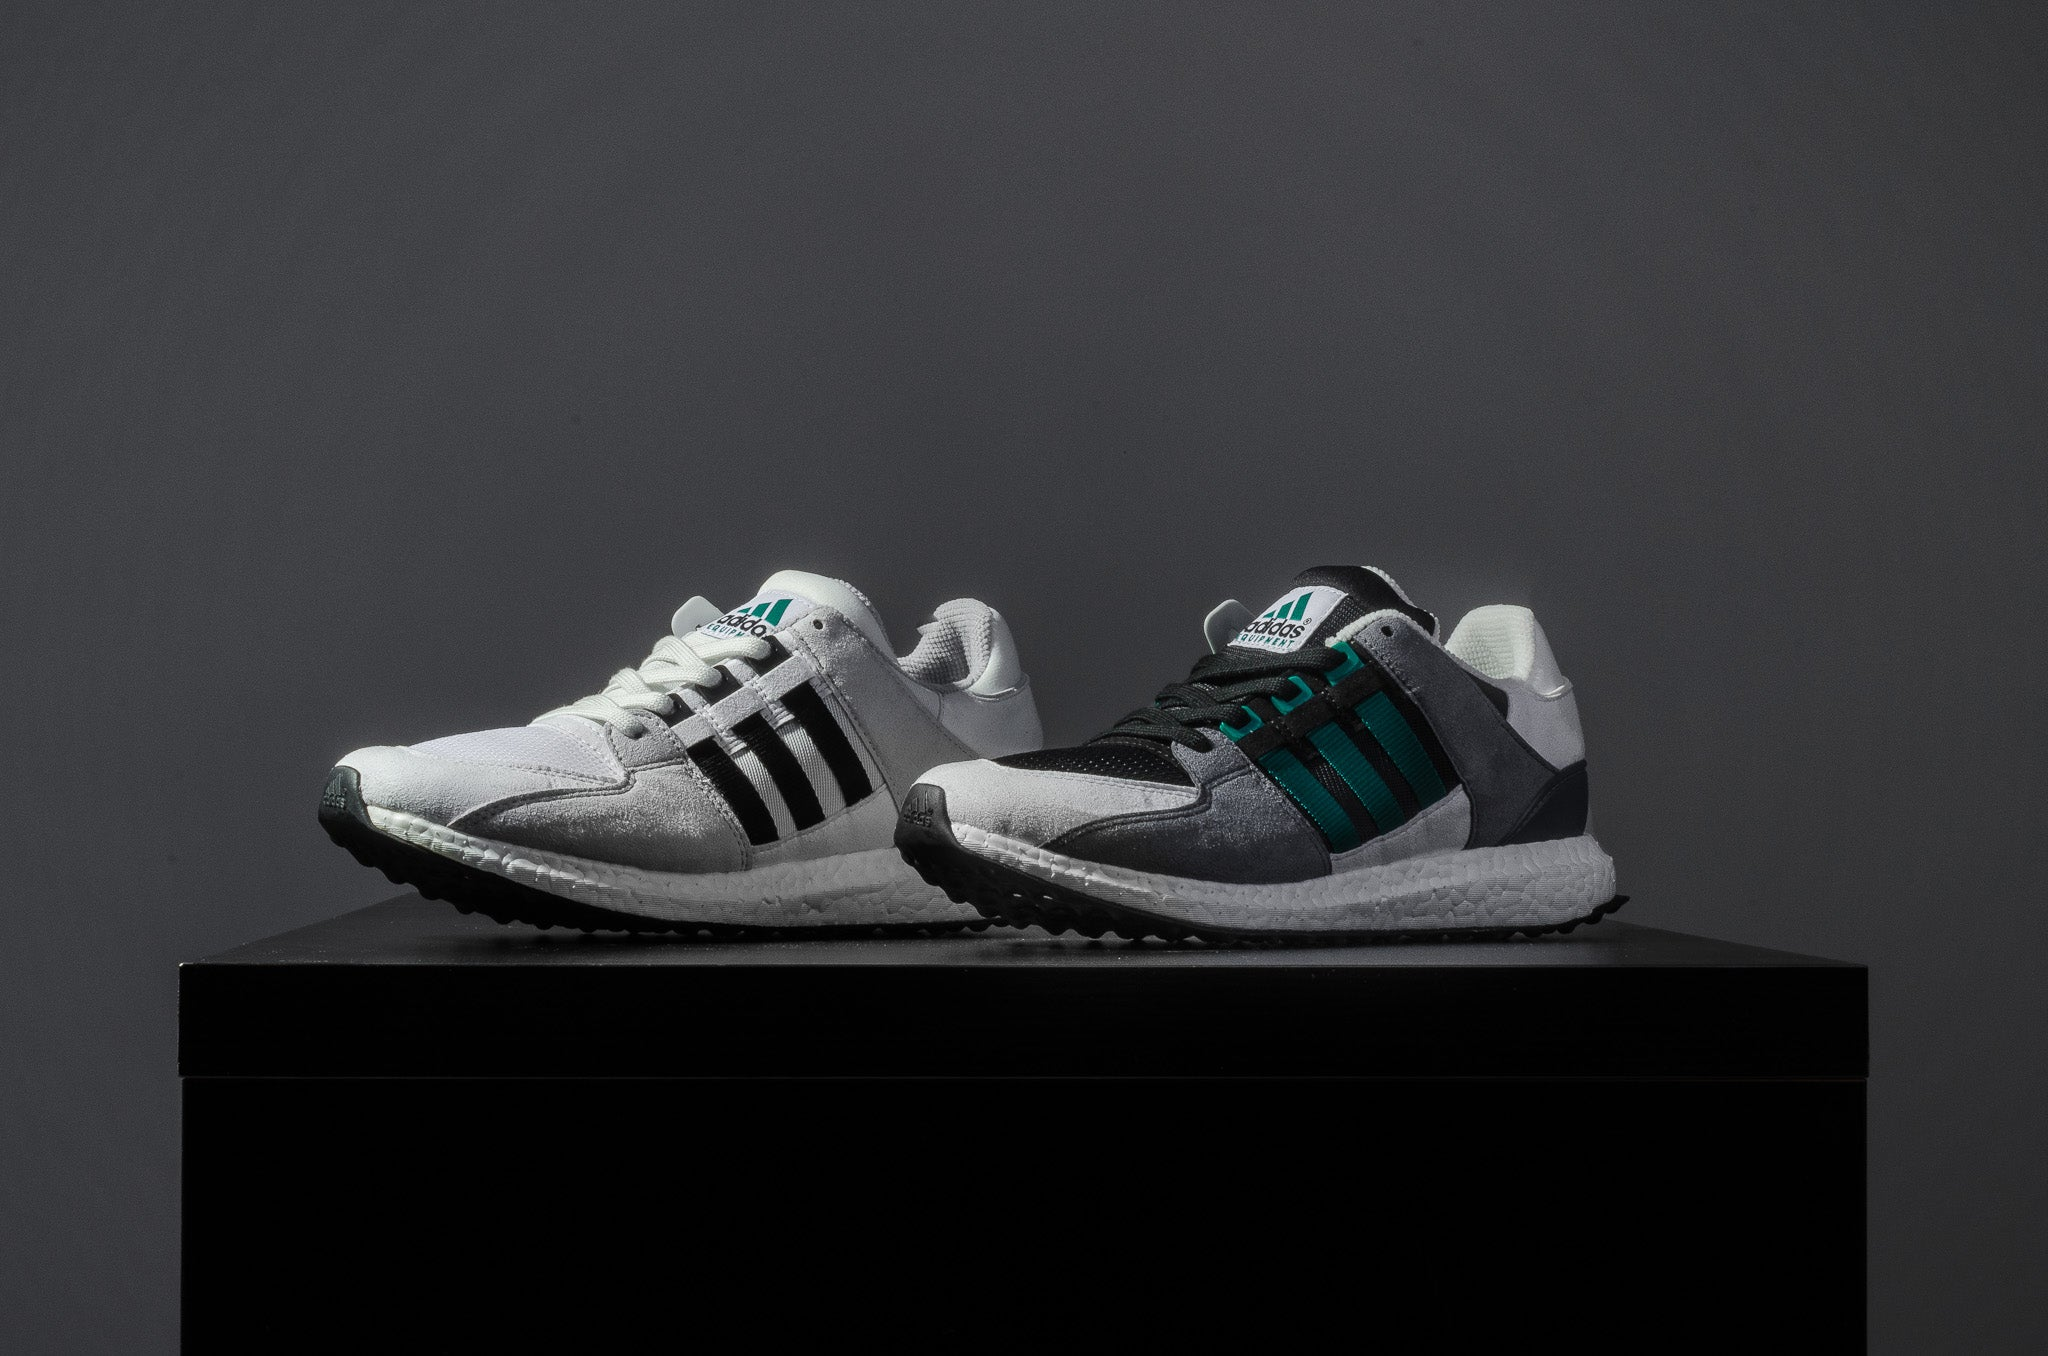 680d8fe5d8d The latest adidas silhouette to get the Boost treatment is the EQT Running  Support  93. The sneaker s upper maintains its classic shape